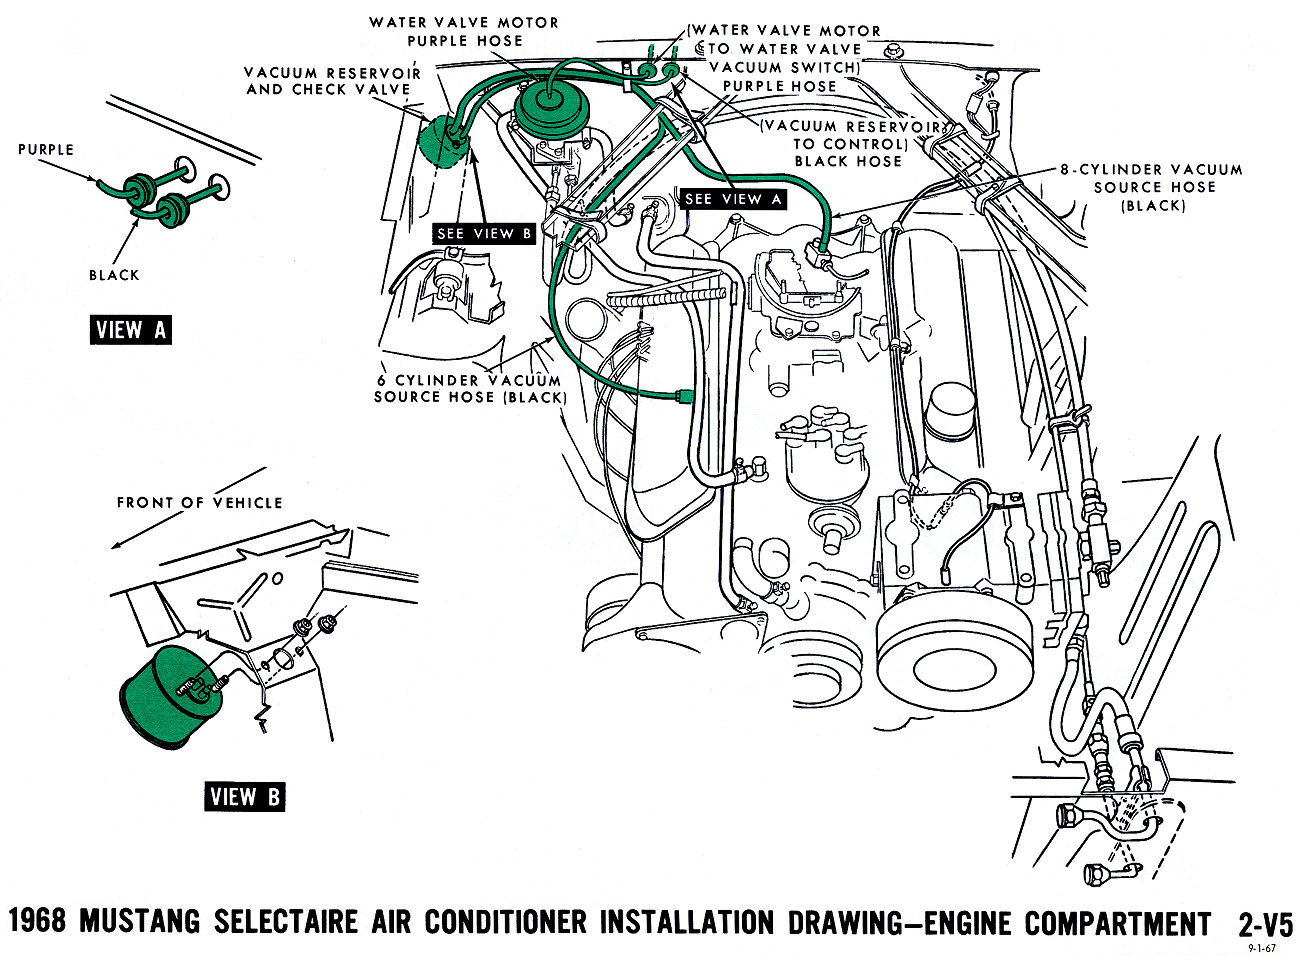 1968 Mustang Vacuum Diagrams on ford air conditioner diagram